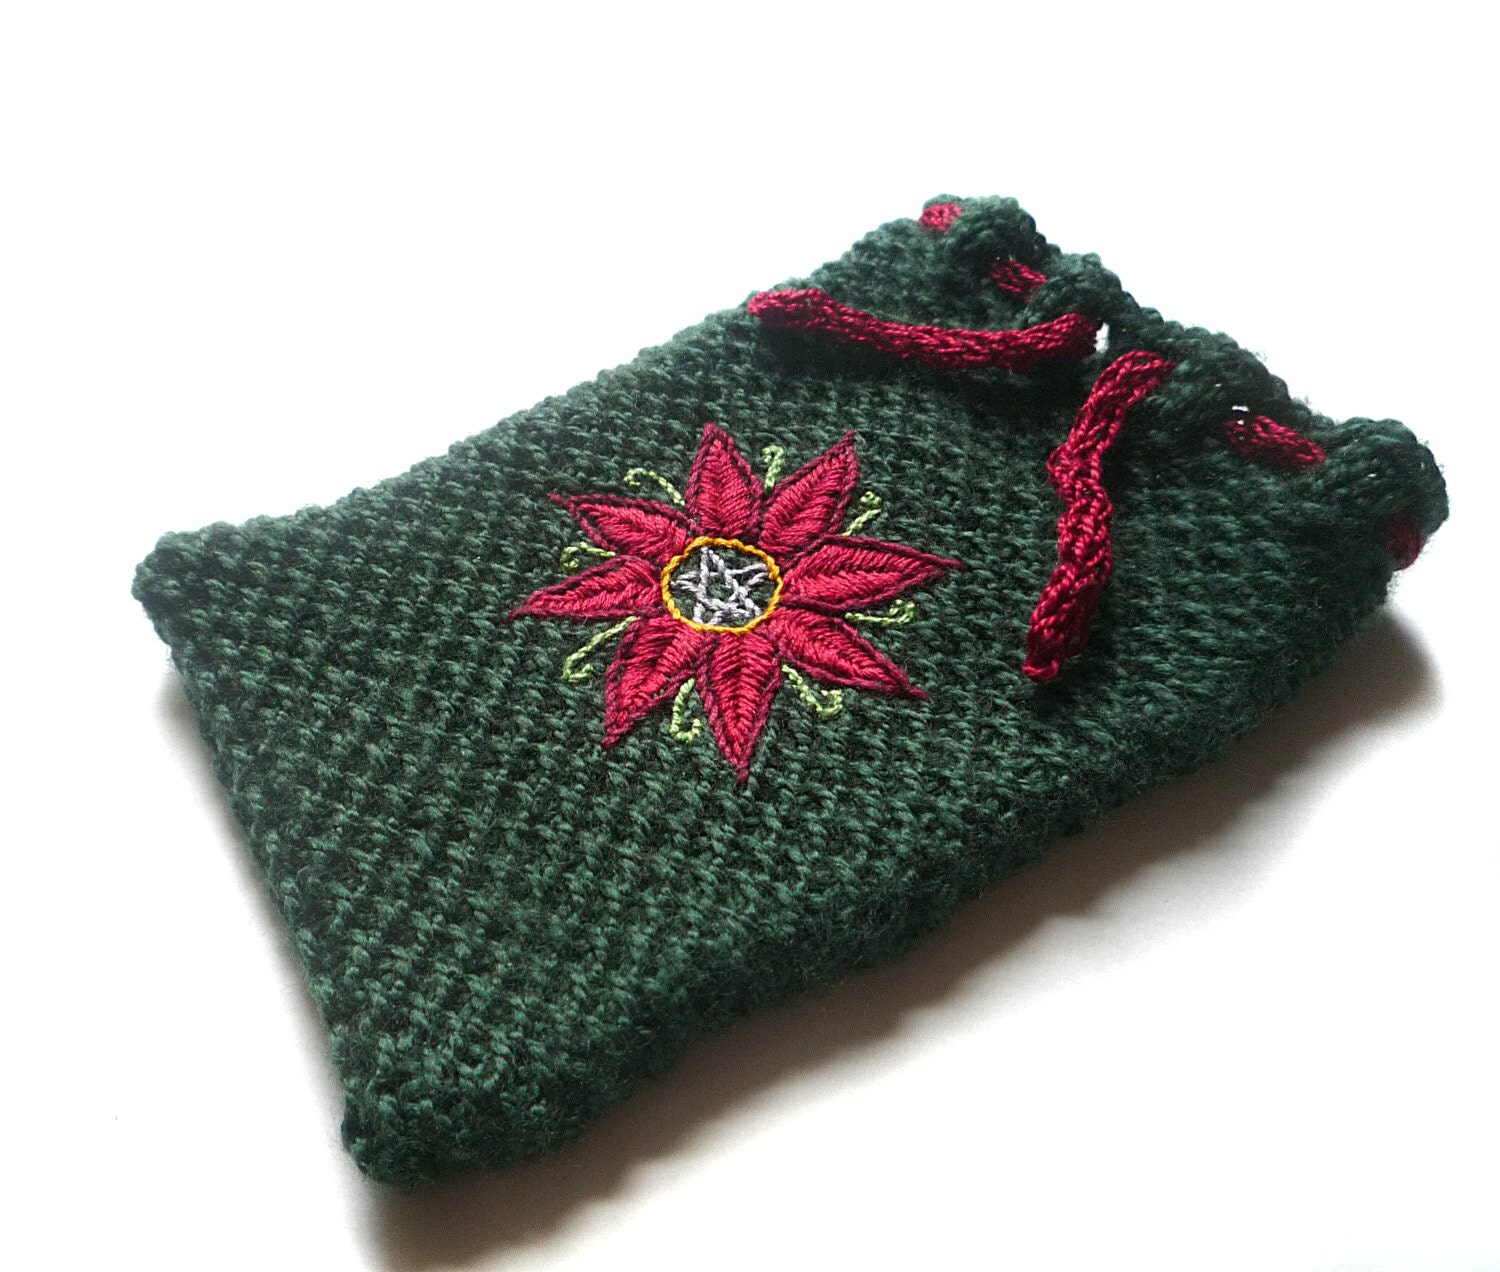 Knit Pattern Tarot Bag : Green Knit Tarot Bag with Embroidered Flower by ...